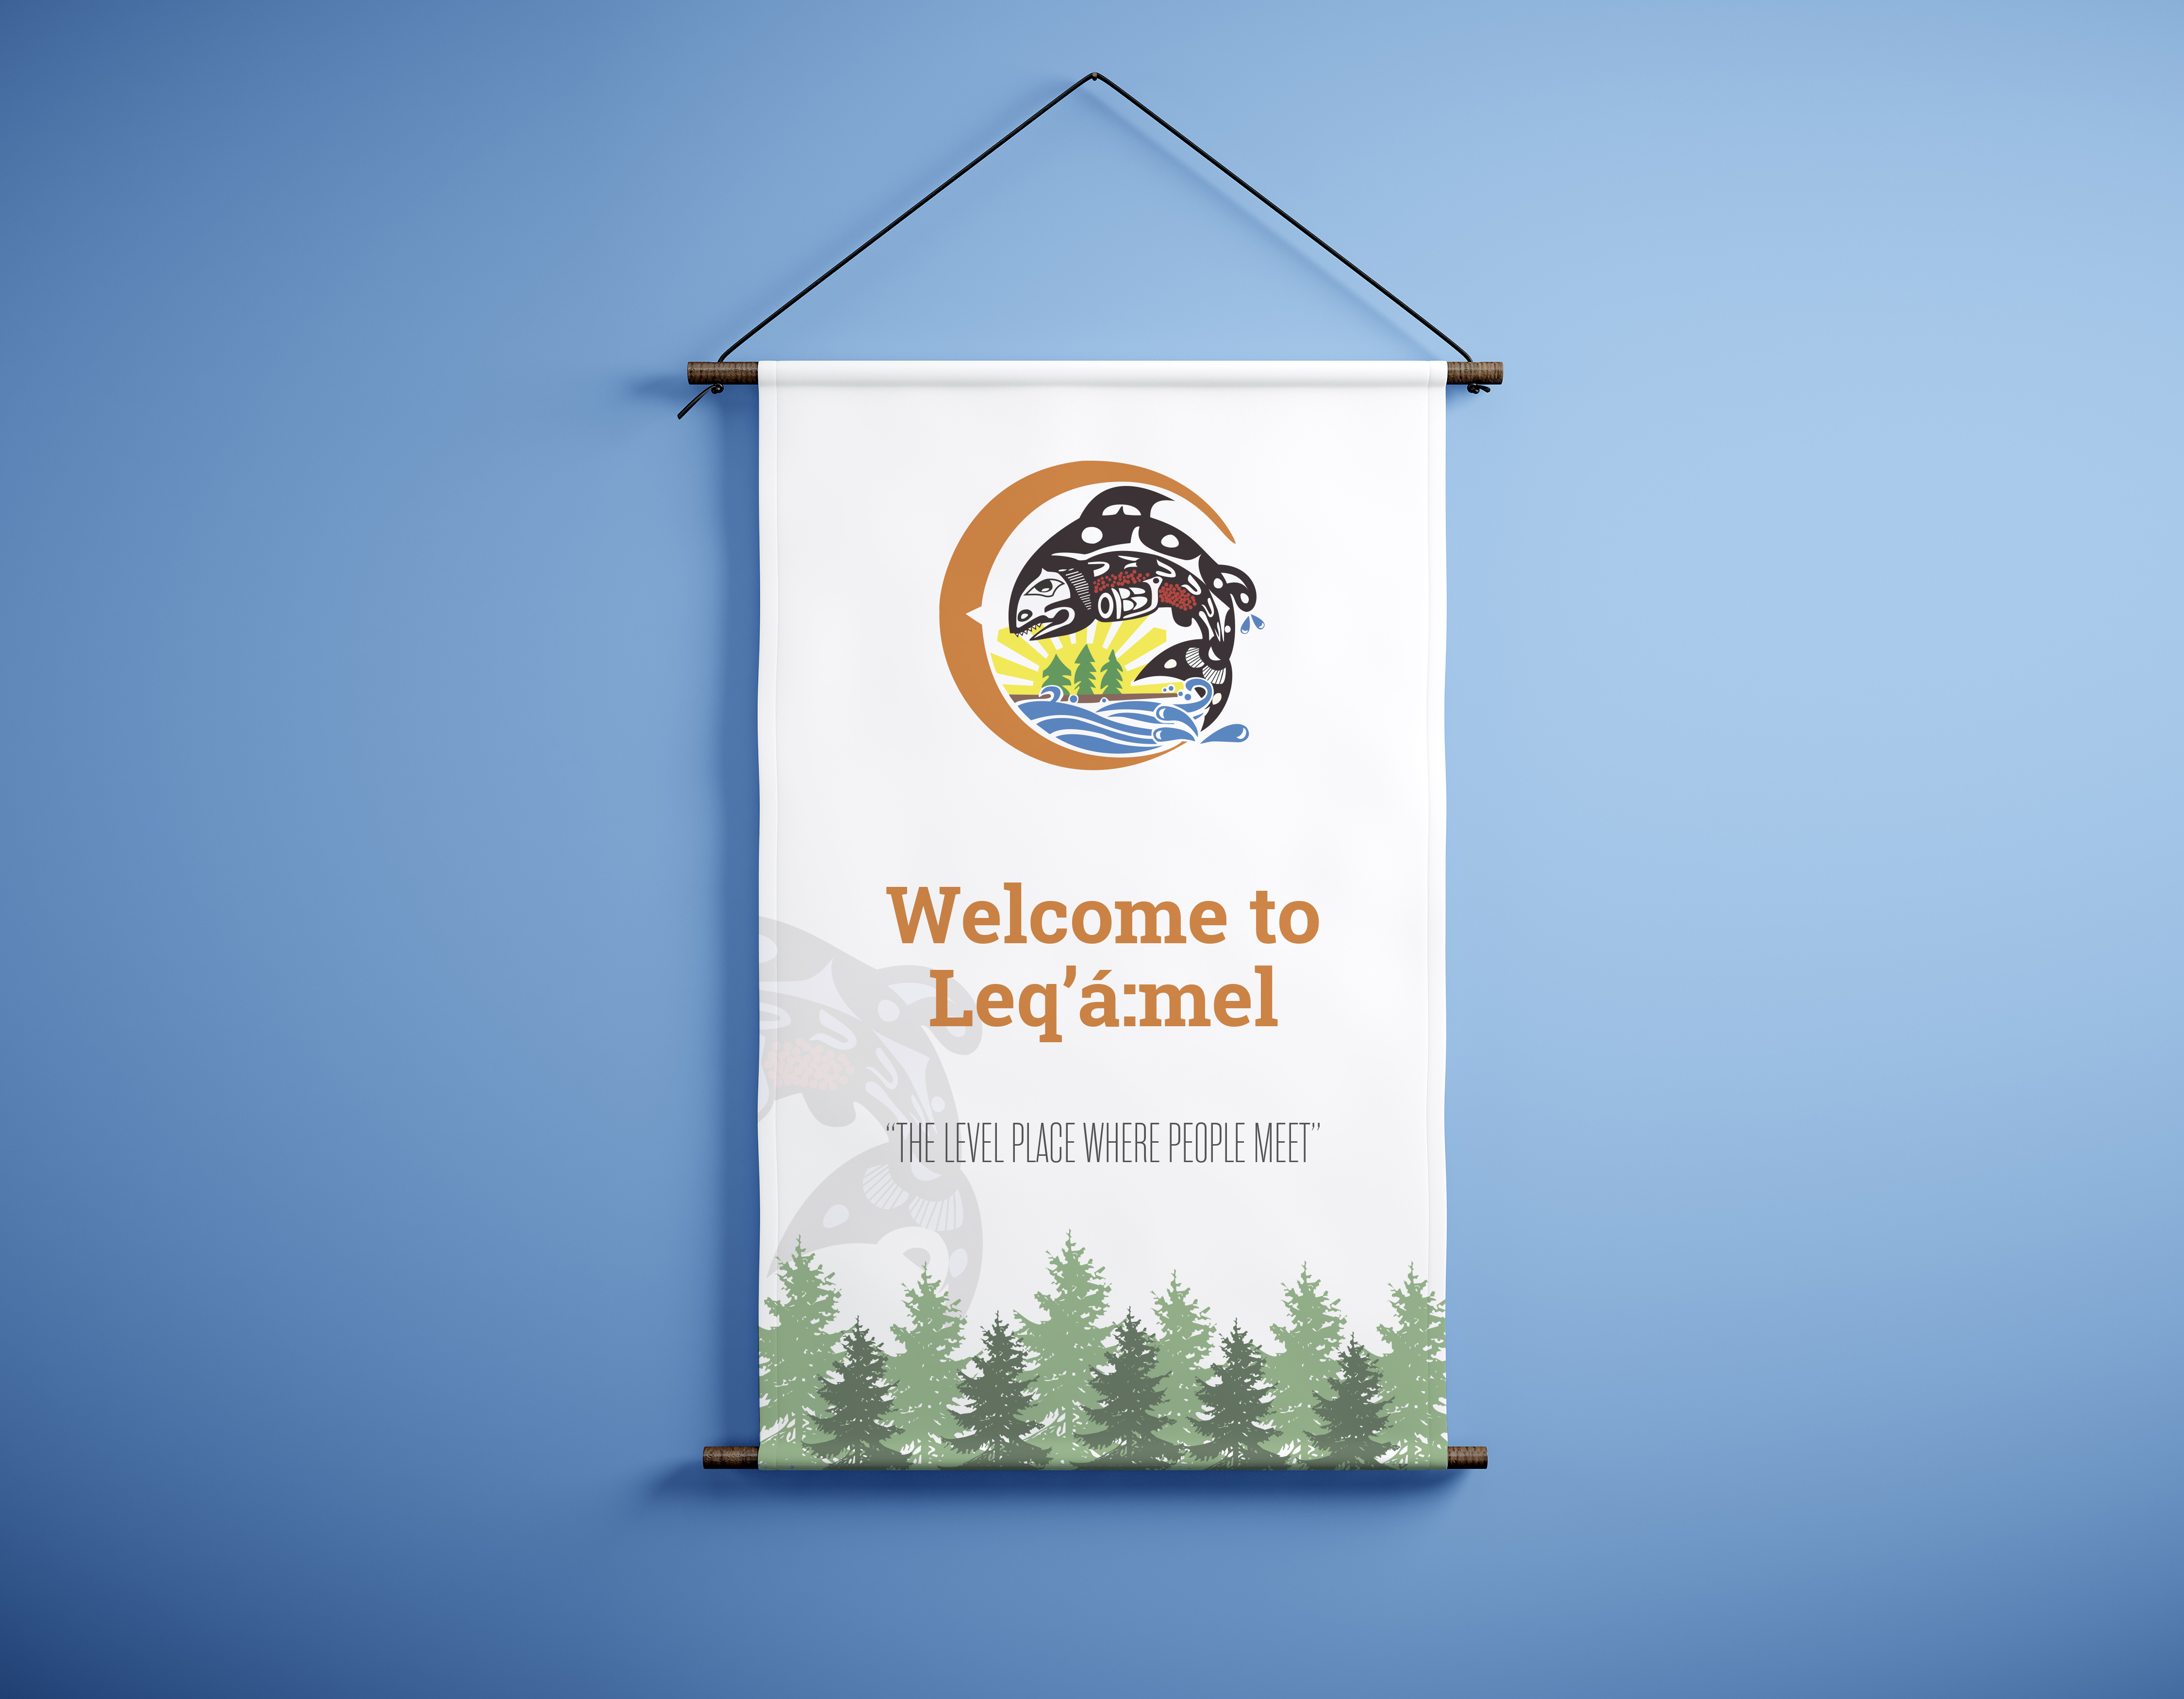 Leq'a':mel First Nation Banners